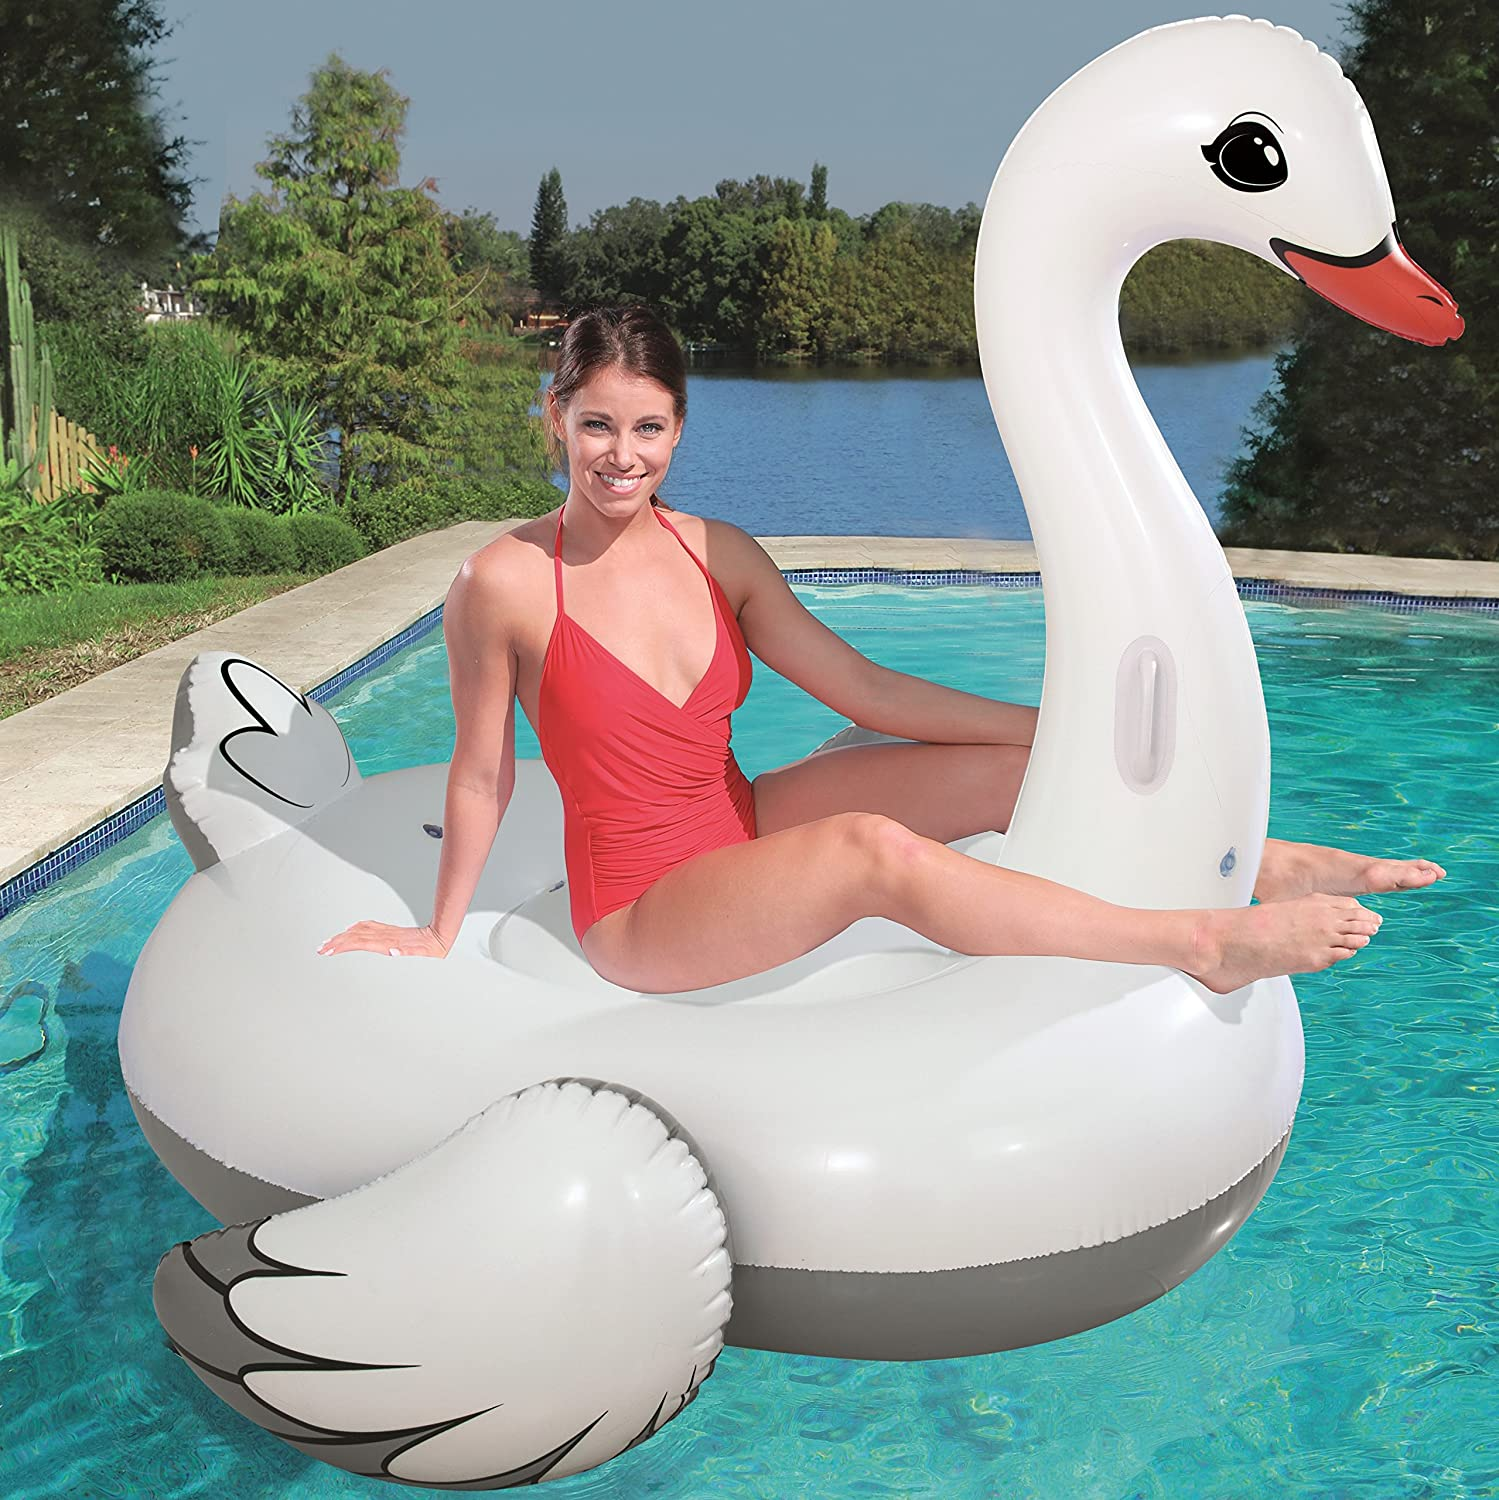 Cisne Hinchable Bestway Supersized: Amazon.es: Juguetes y juegos